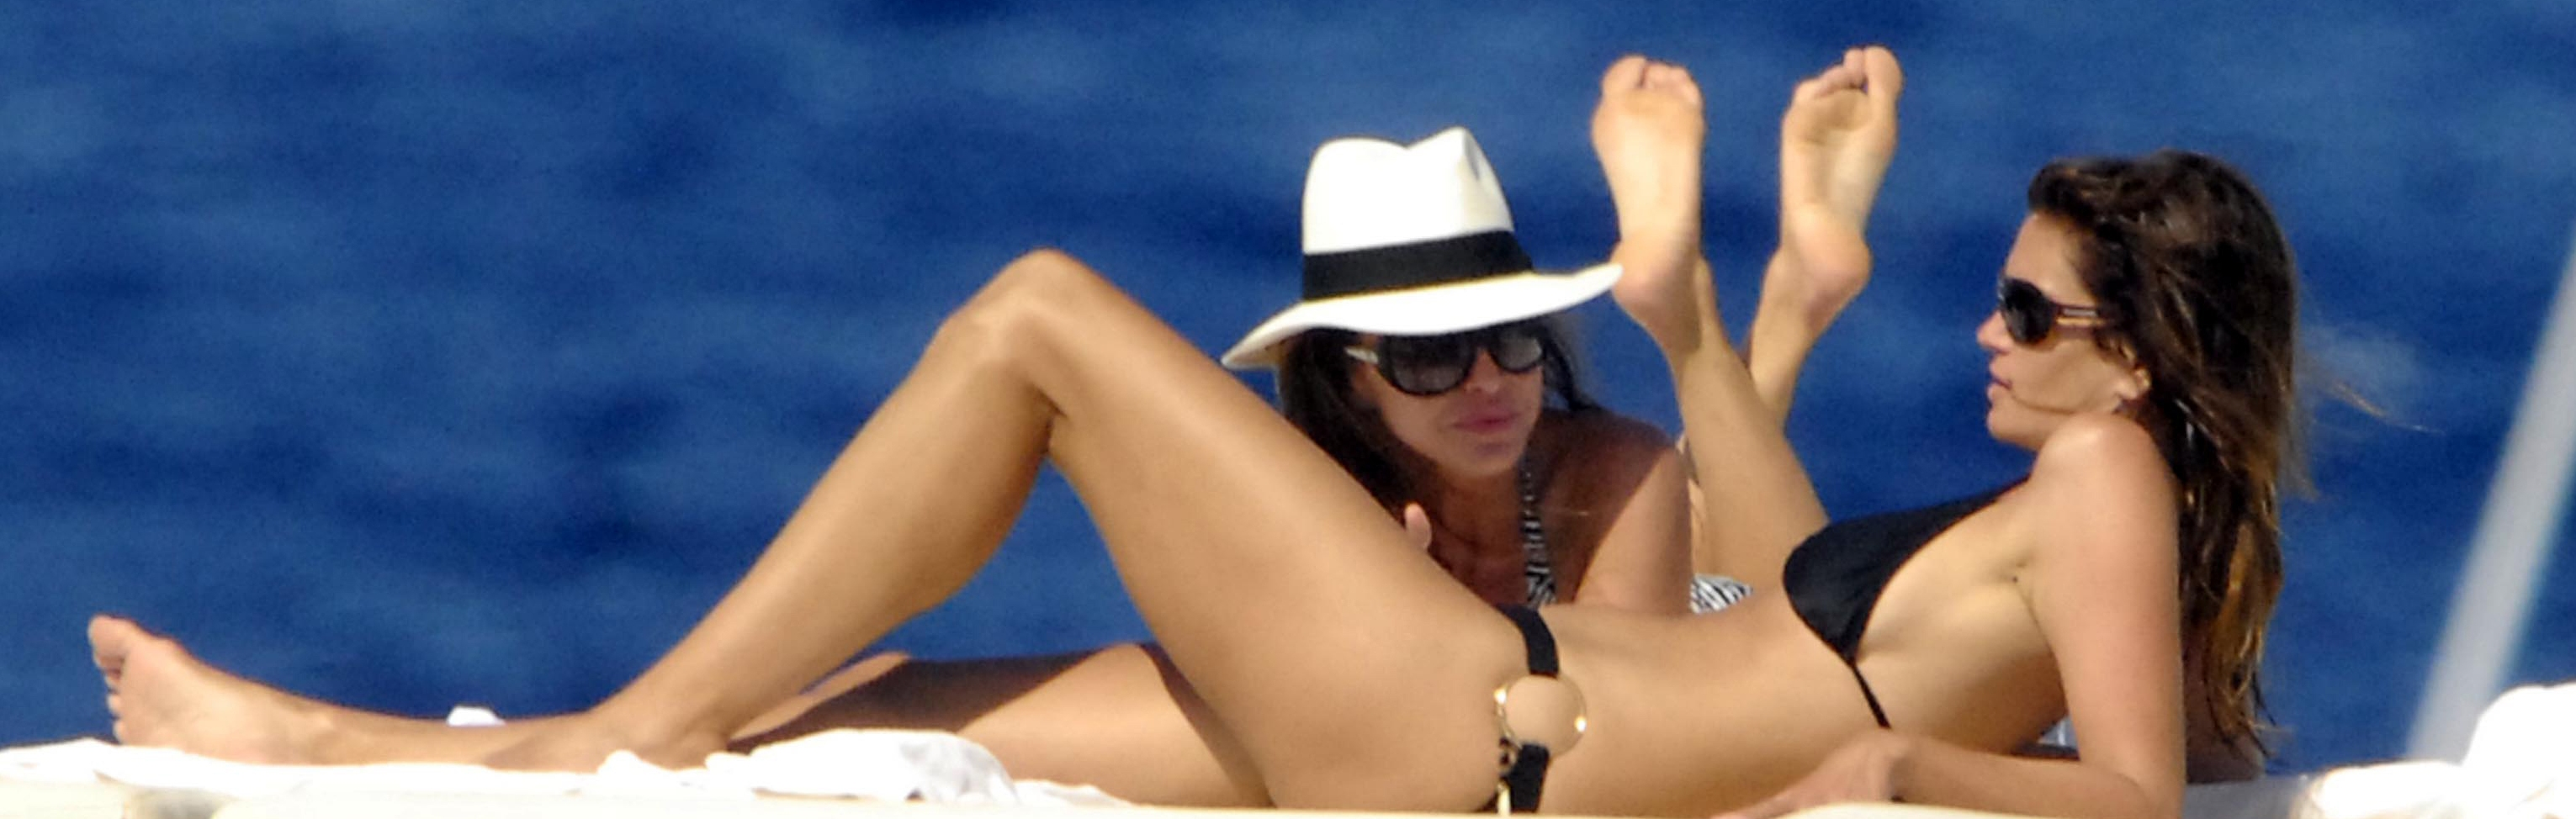 cindy crawford swimsuit Cindy Crawford Topless Naked Sun Bathing!